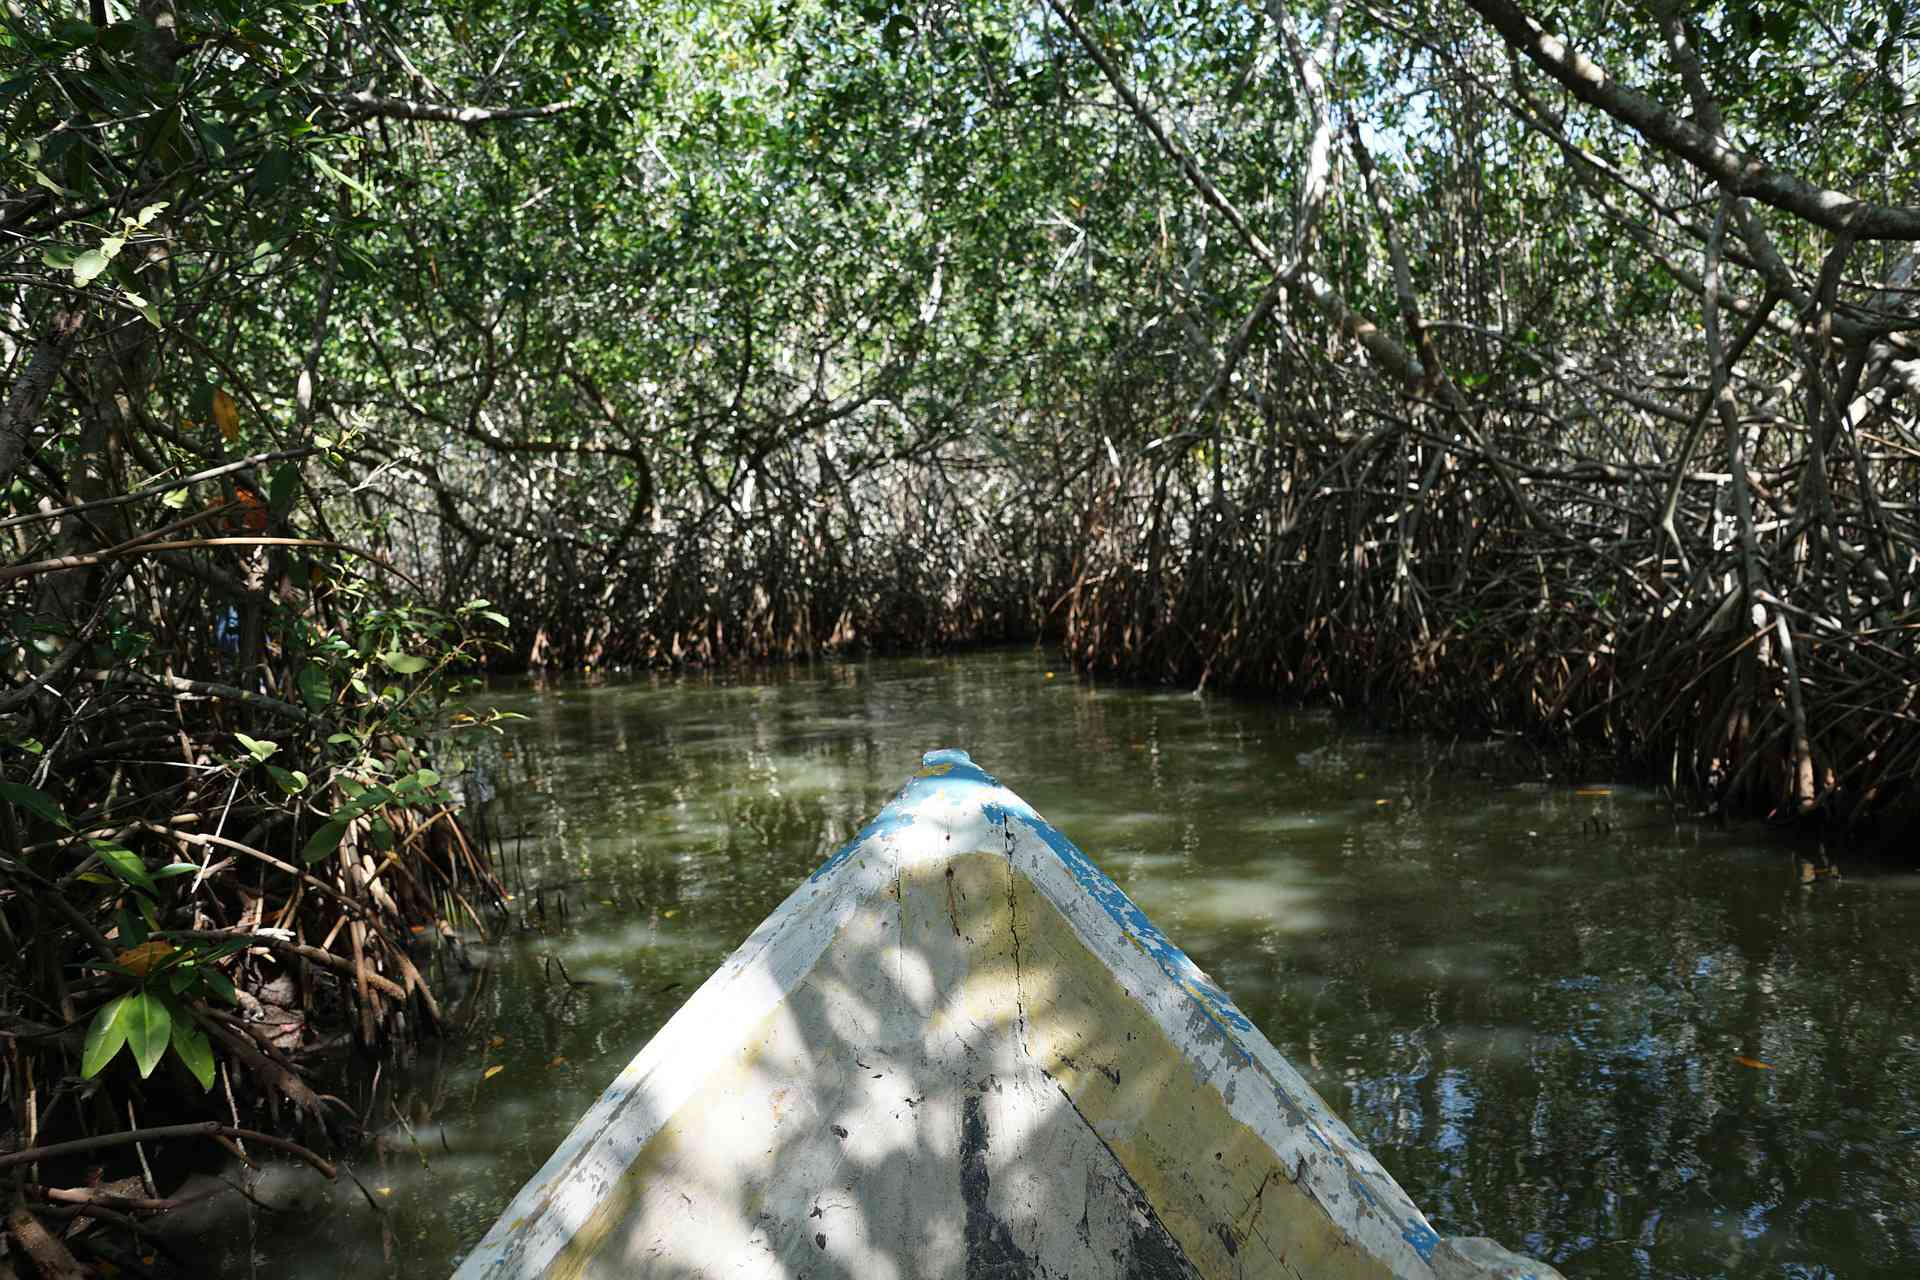 First person photo of a mangrove forest as seen from a small boat.